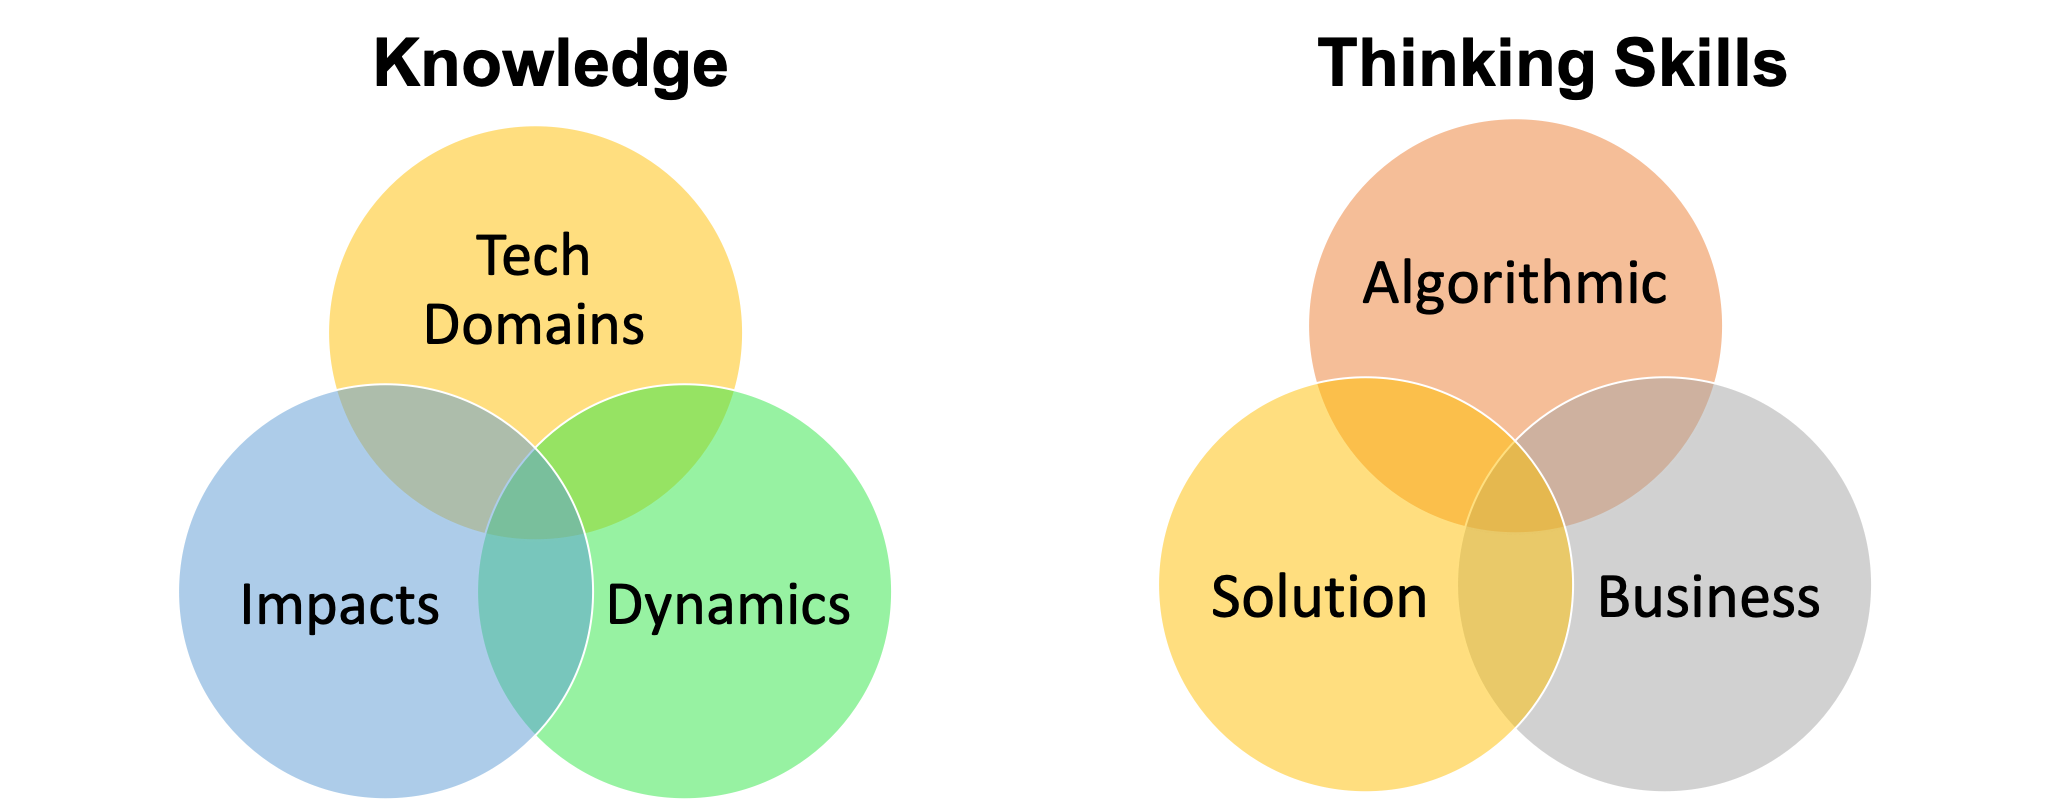 Knowledge: Tech Domains, Impacts, Dynamics. Thinking Skills: Algorithmic, Solution, Business.